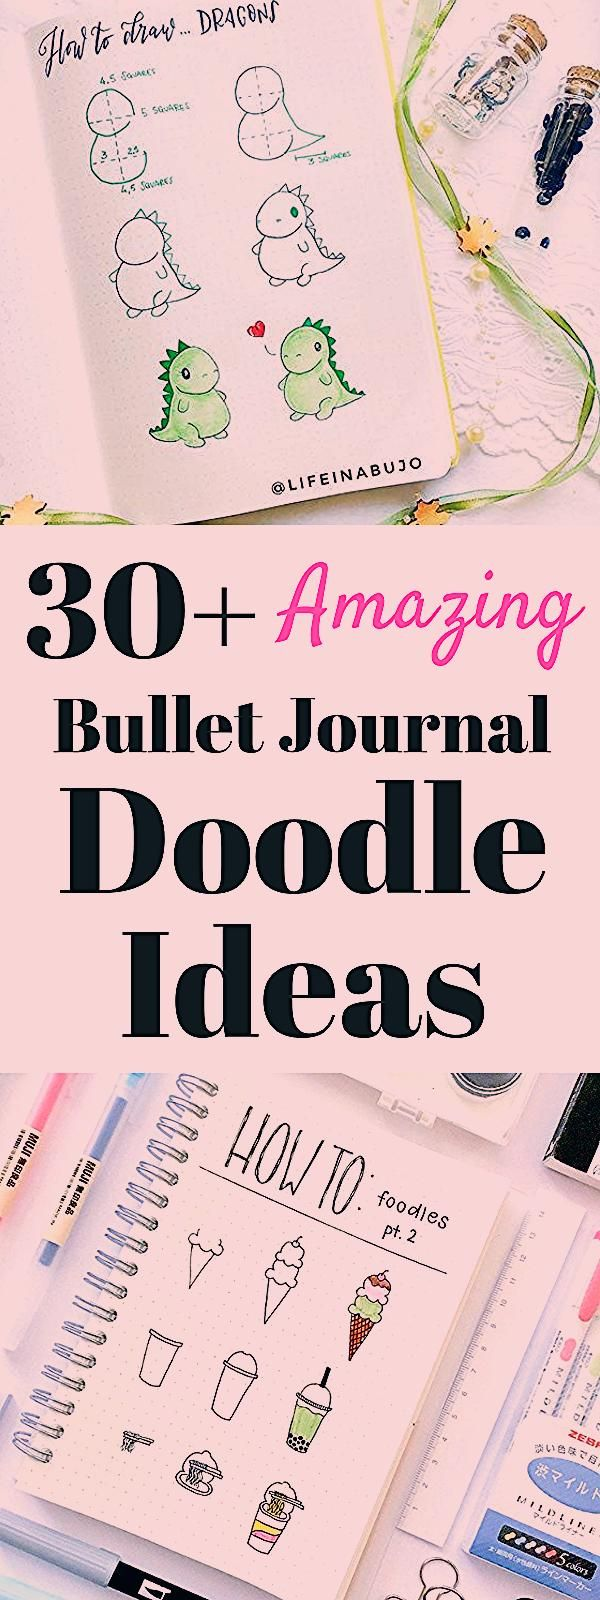 Doodle drawing that are easy to do! Over 30 step by step doodle tutorials and how to's. Bullet journal doodle ideas that are fresh, fun, and simple to draw! Bullet journal doodles, doodle ideas, easy doodles. #bulletjournal #doodle